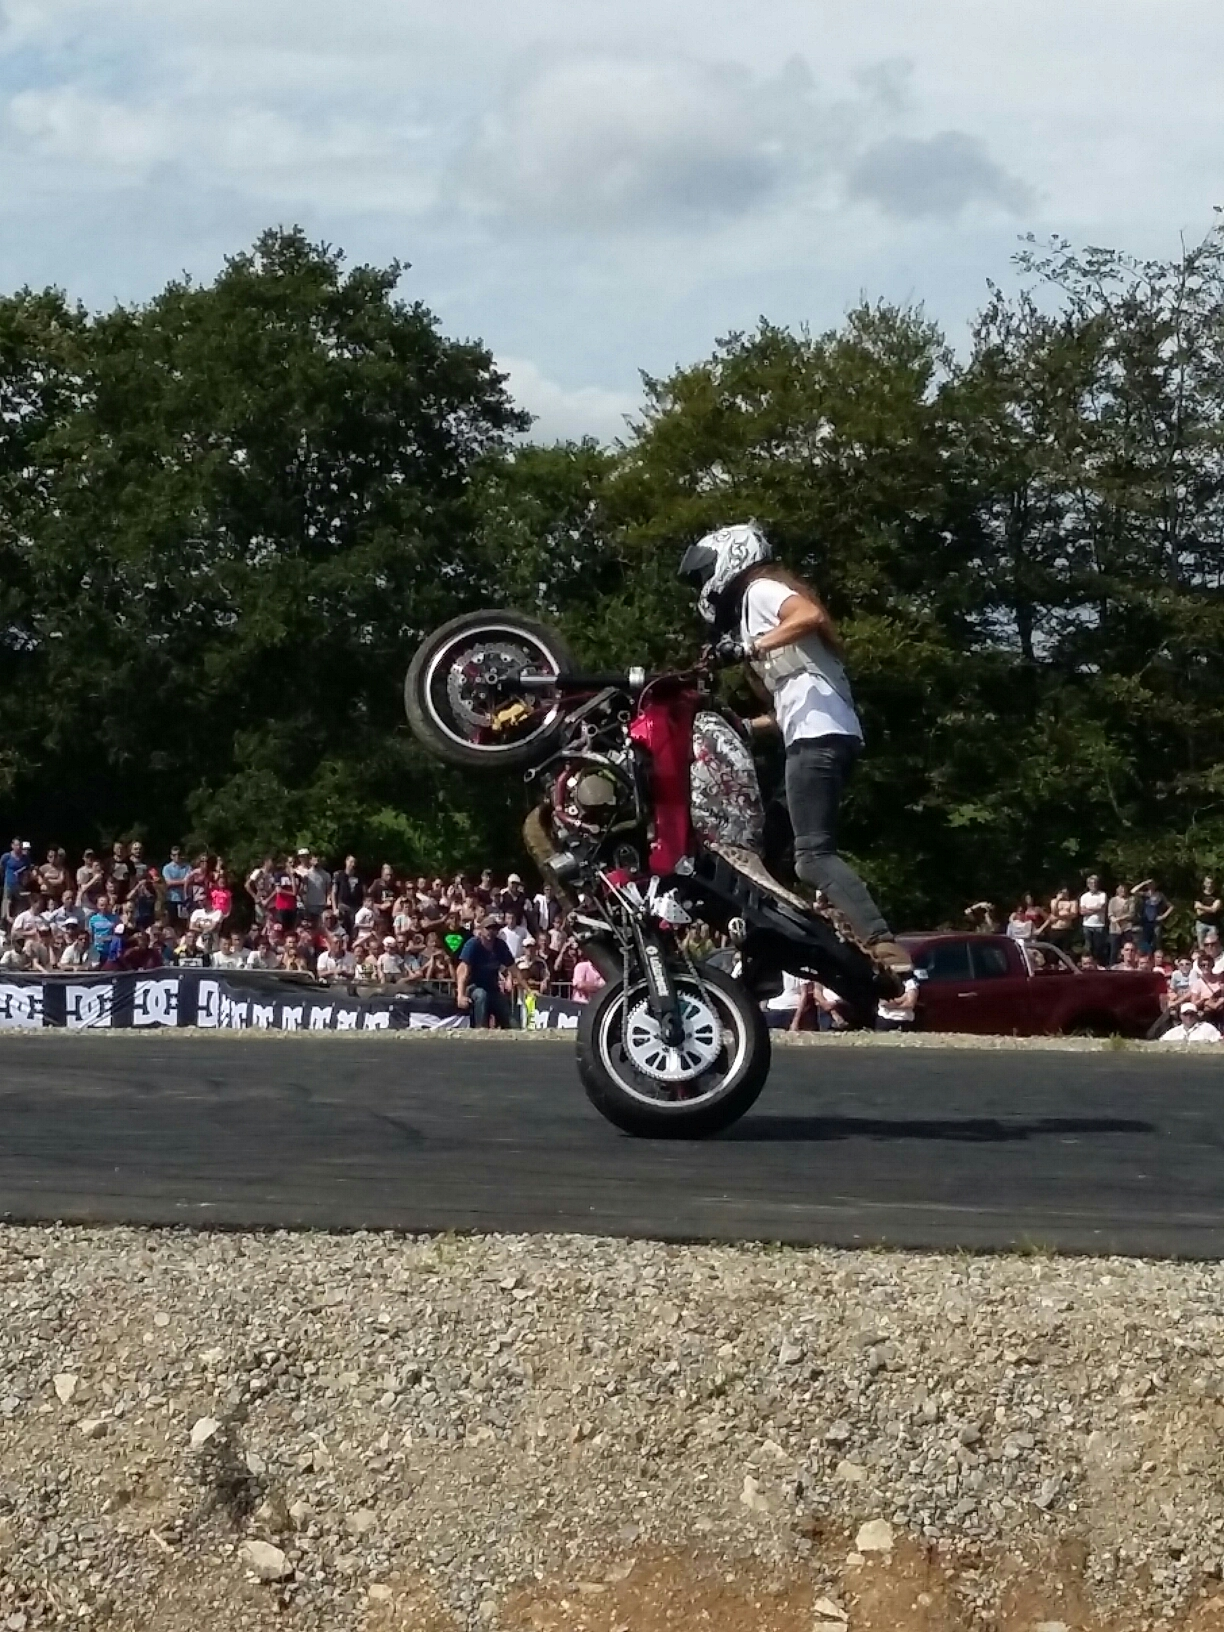 finistair-show-2015-stunt-briec